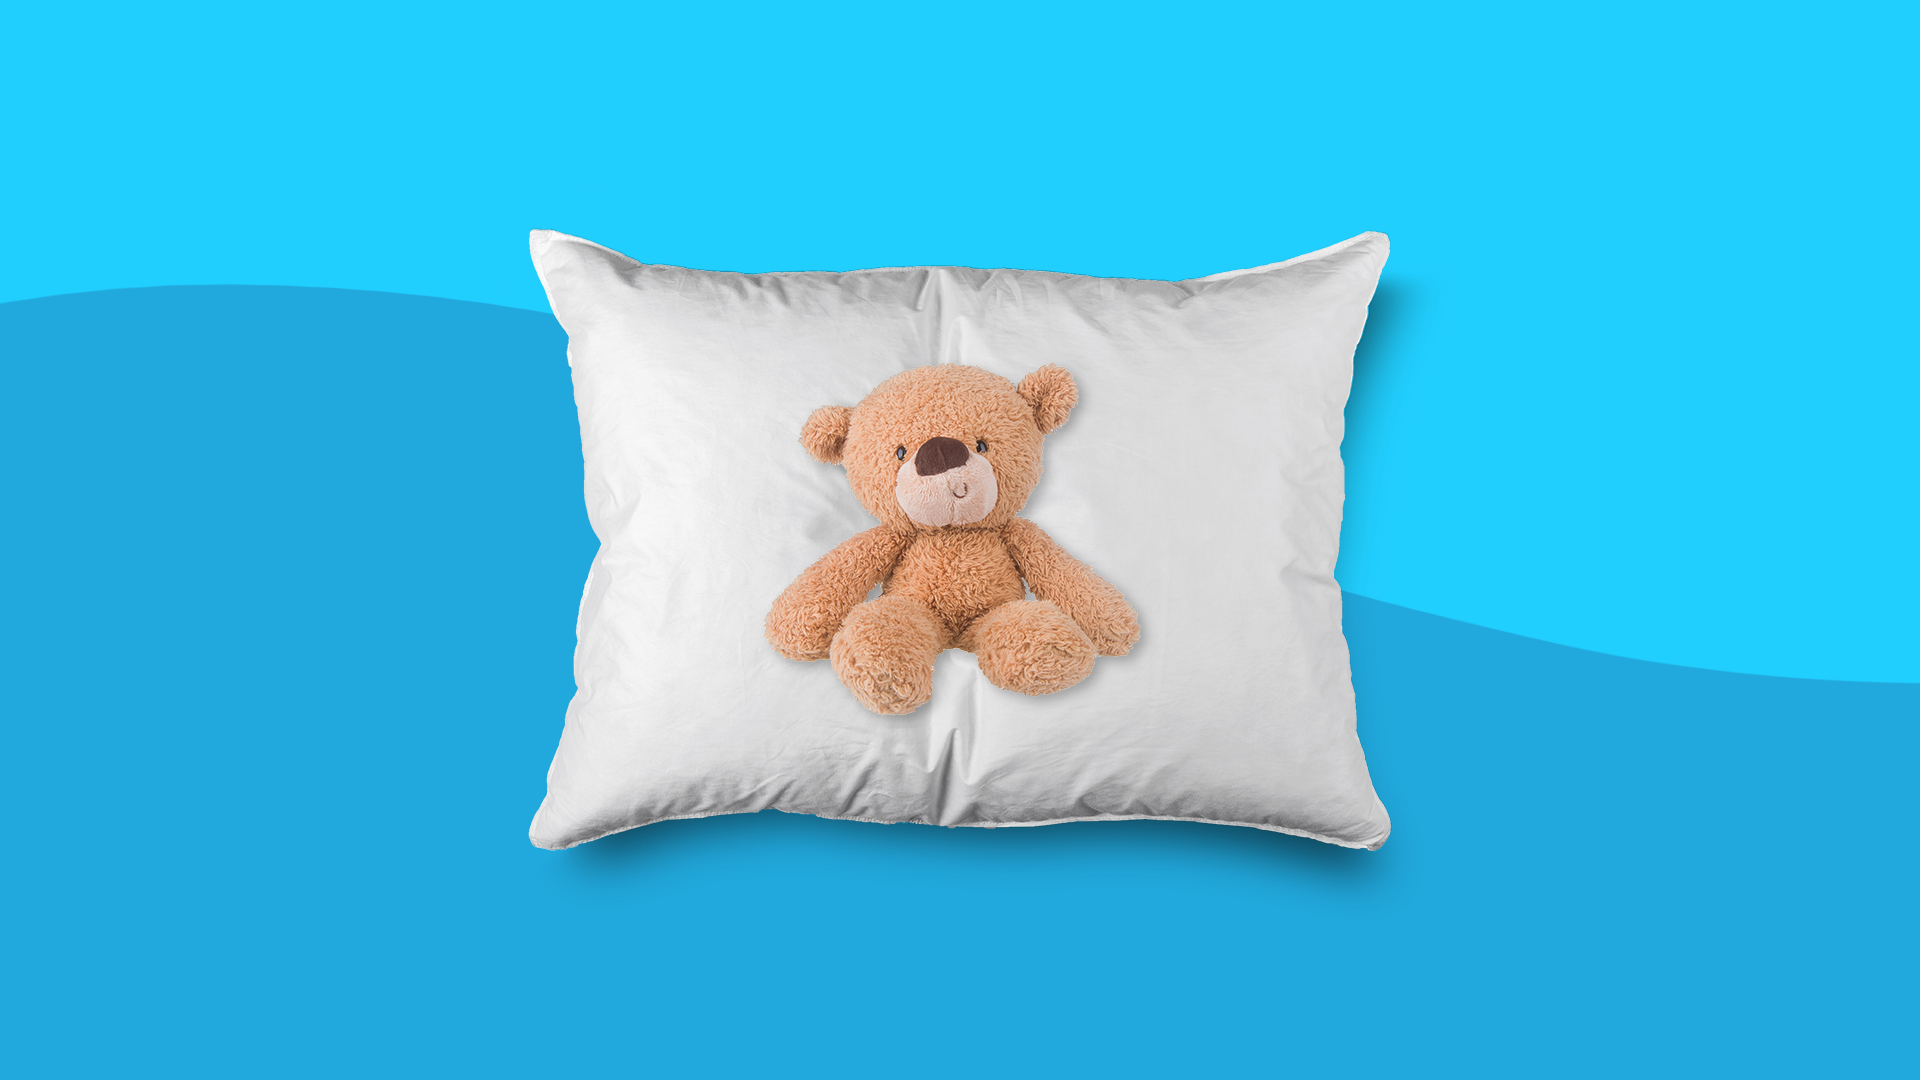 Childhood bedwetting: How to help your child overcome it